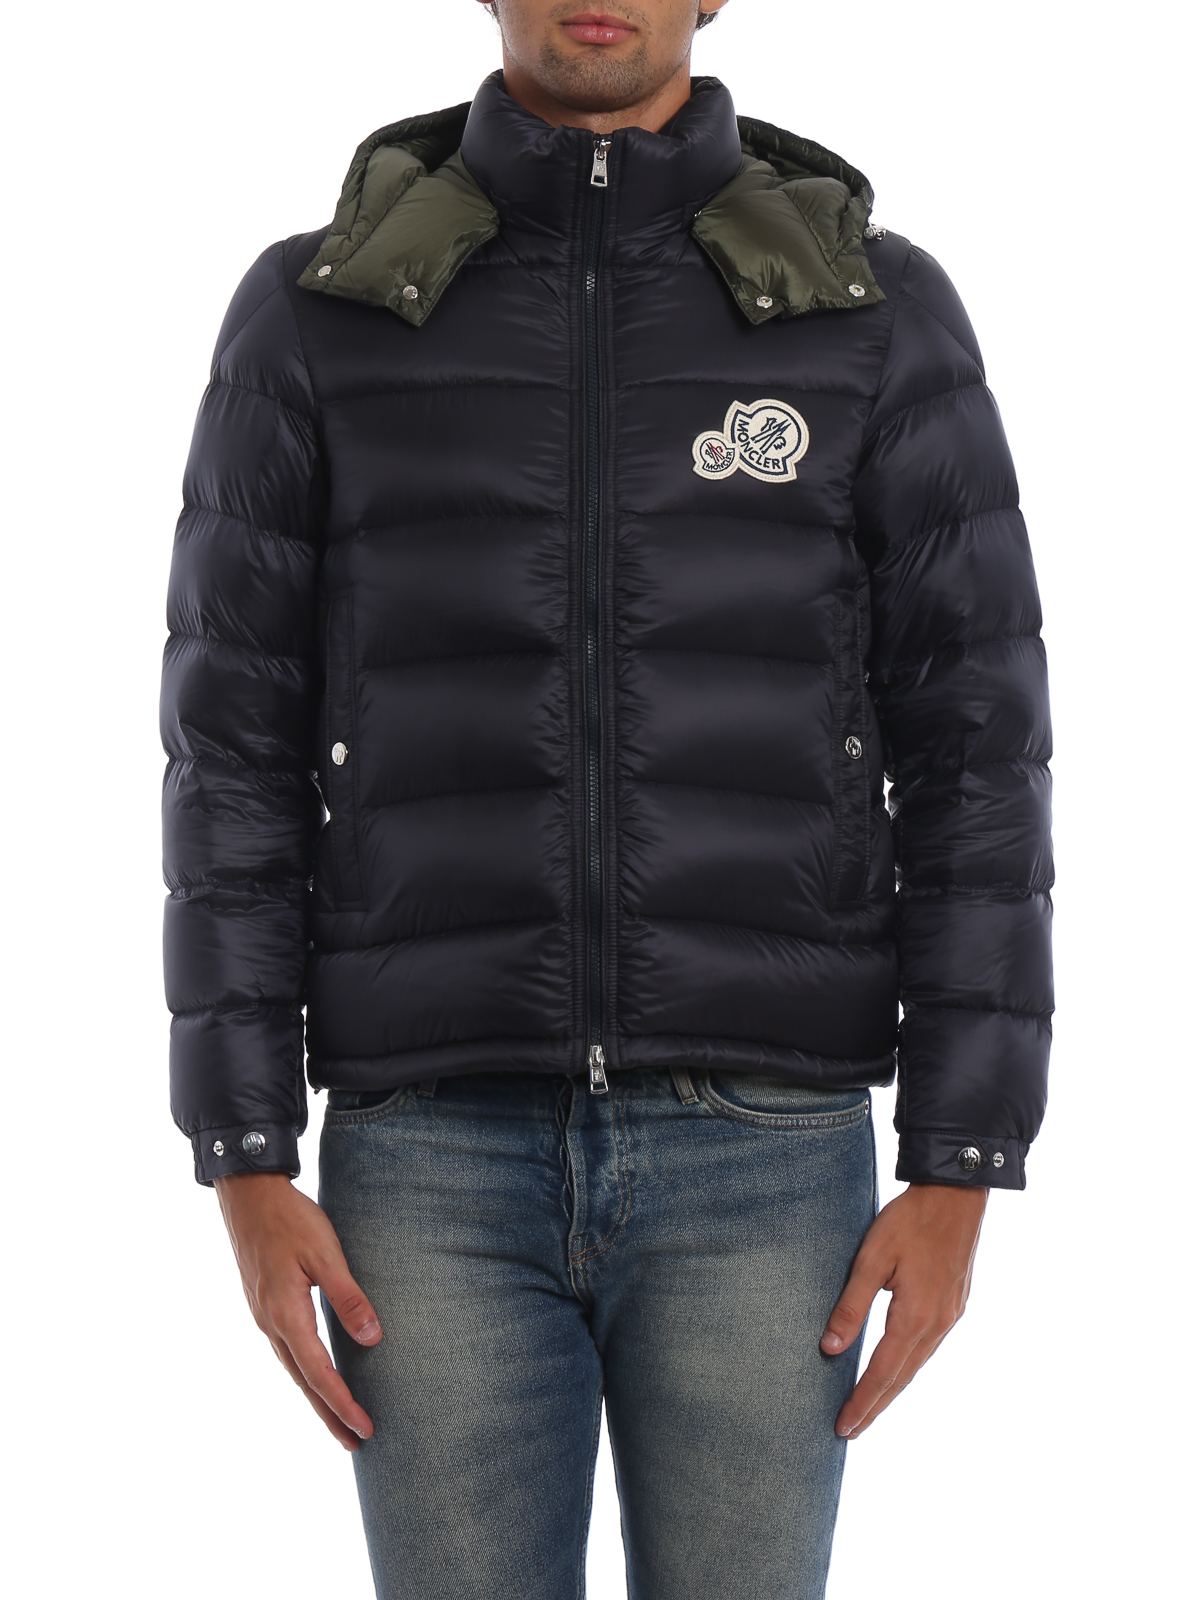 5b94f1533 Moncler - Bramant blue hooded puffer jacket - padded jackets ...